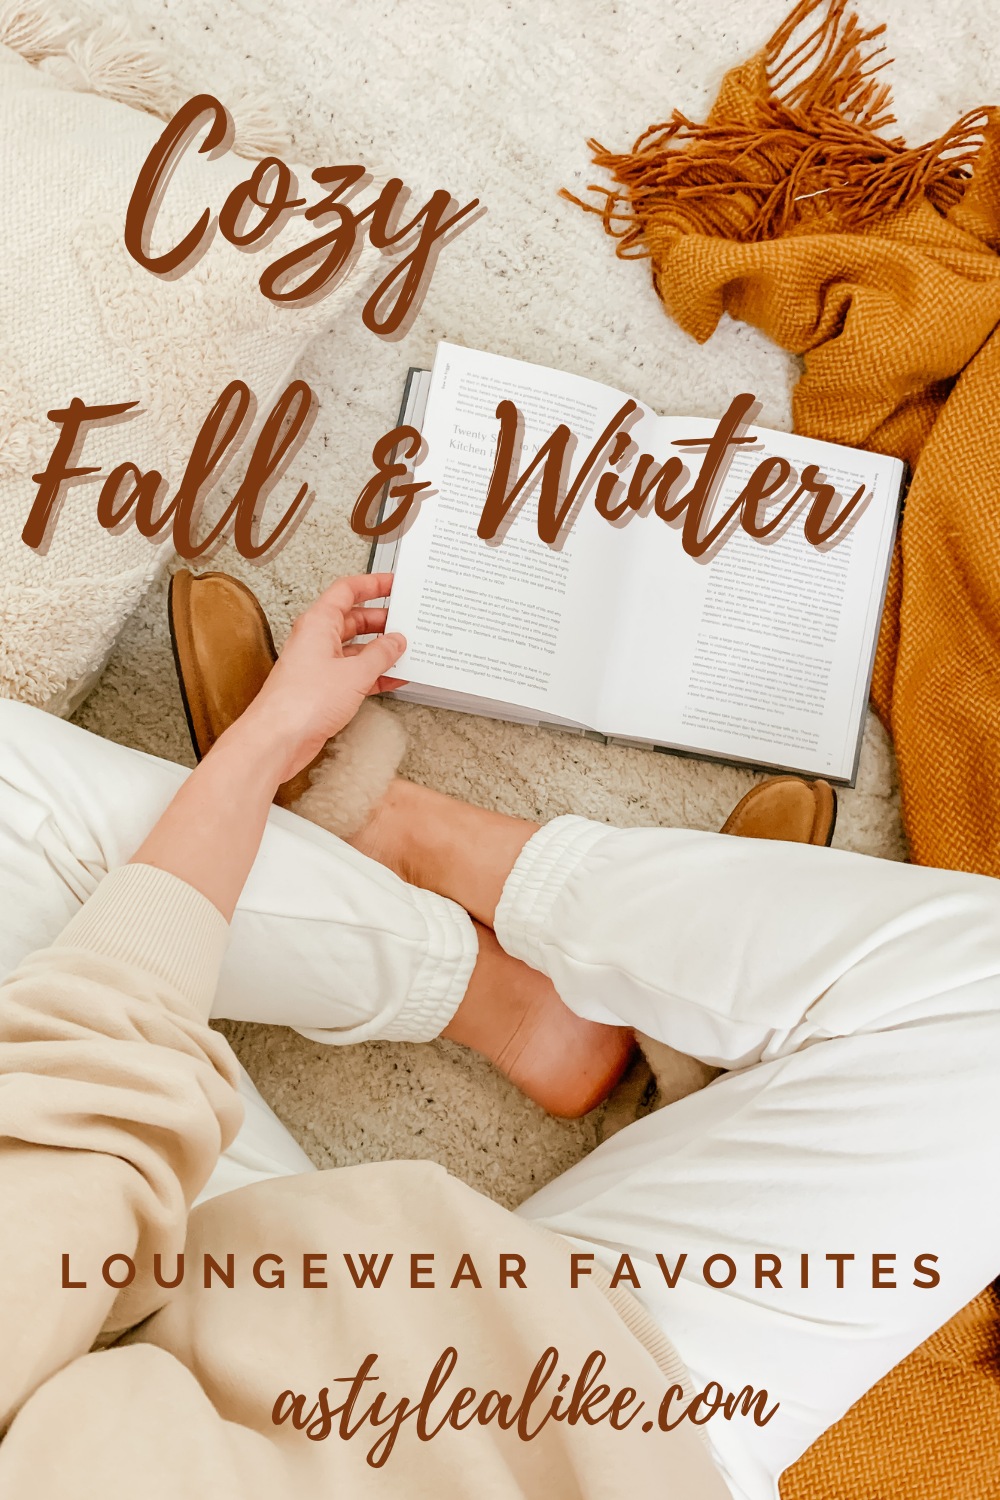 Cozy Fall & Winter Loungewear Favorites (A Style Alike)